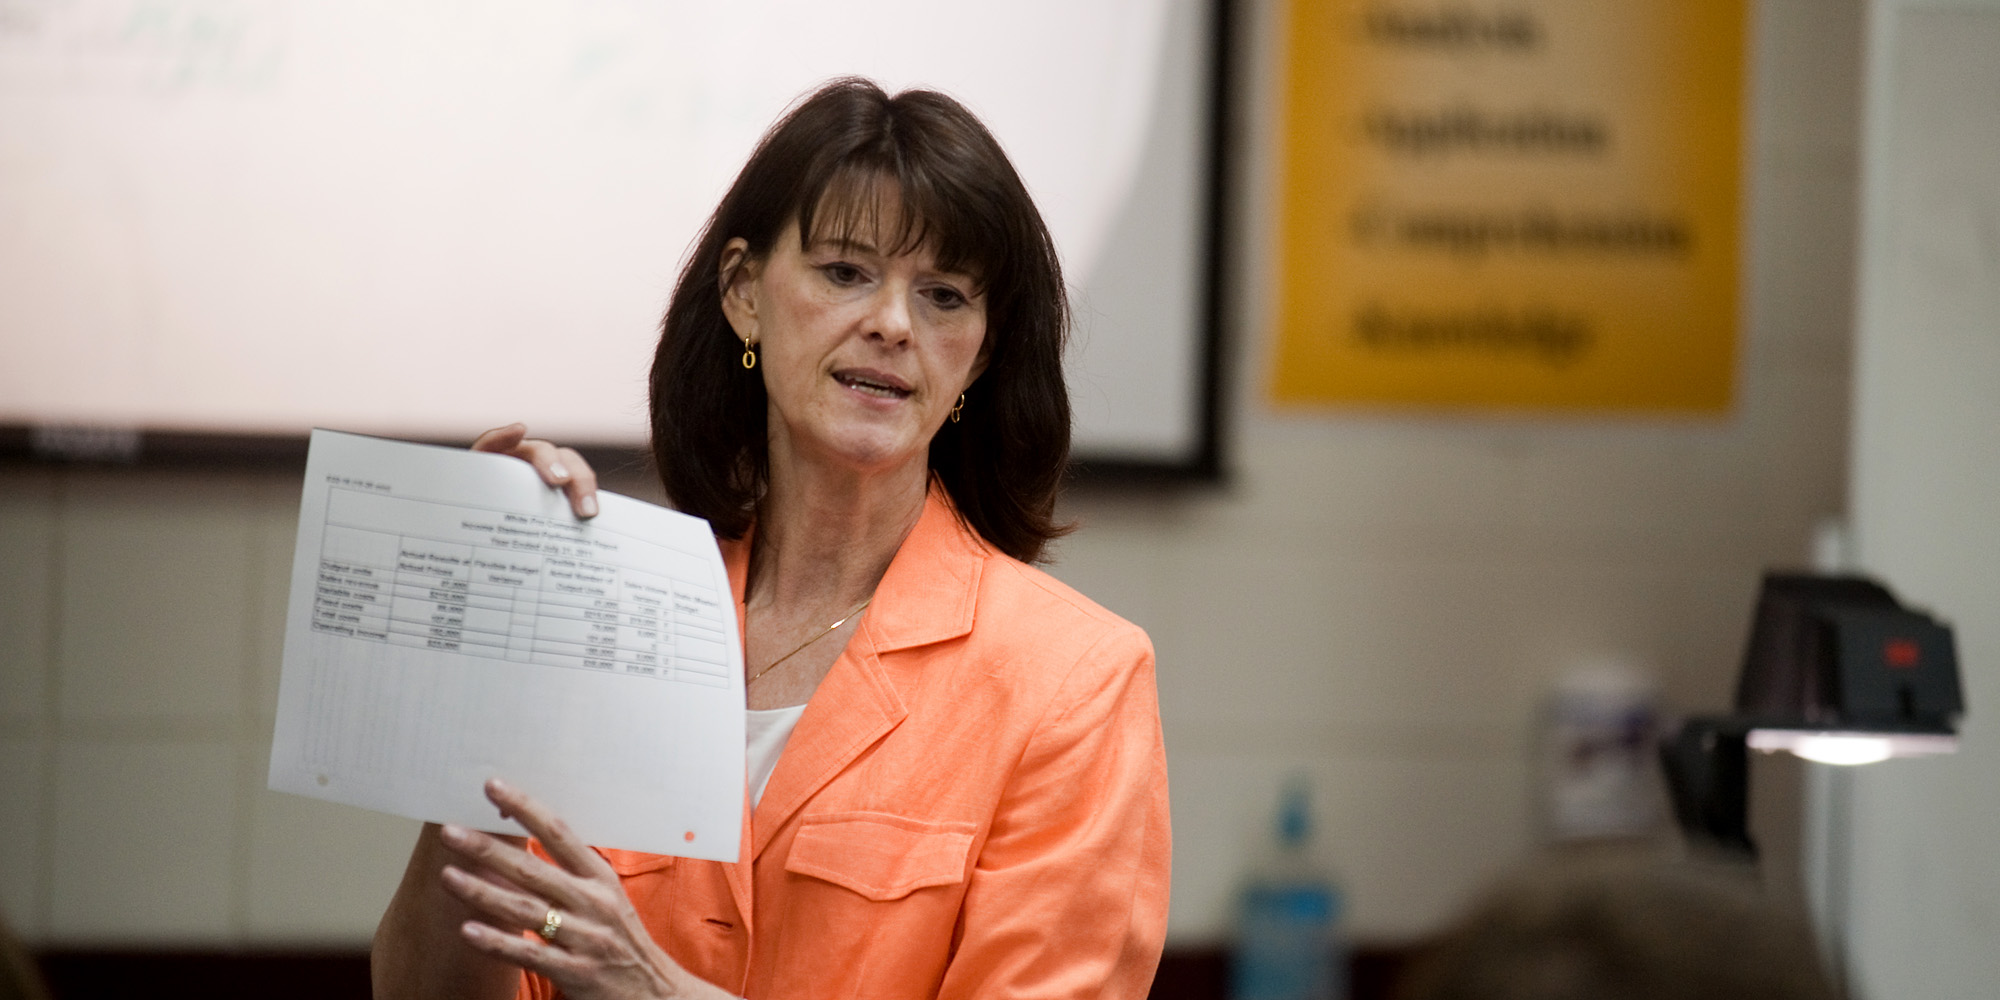 Business faculty member Vickie Andres teaches accounting.